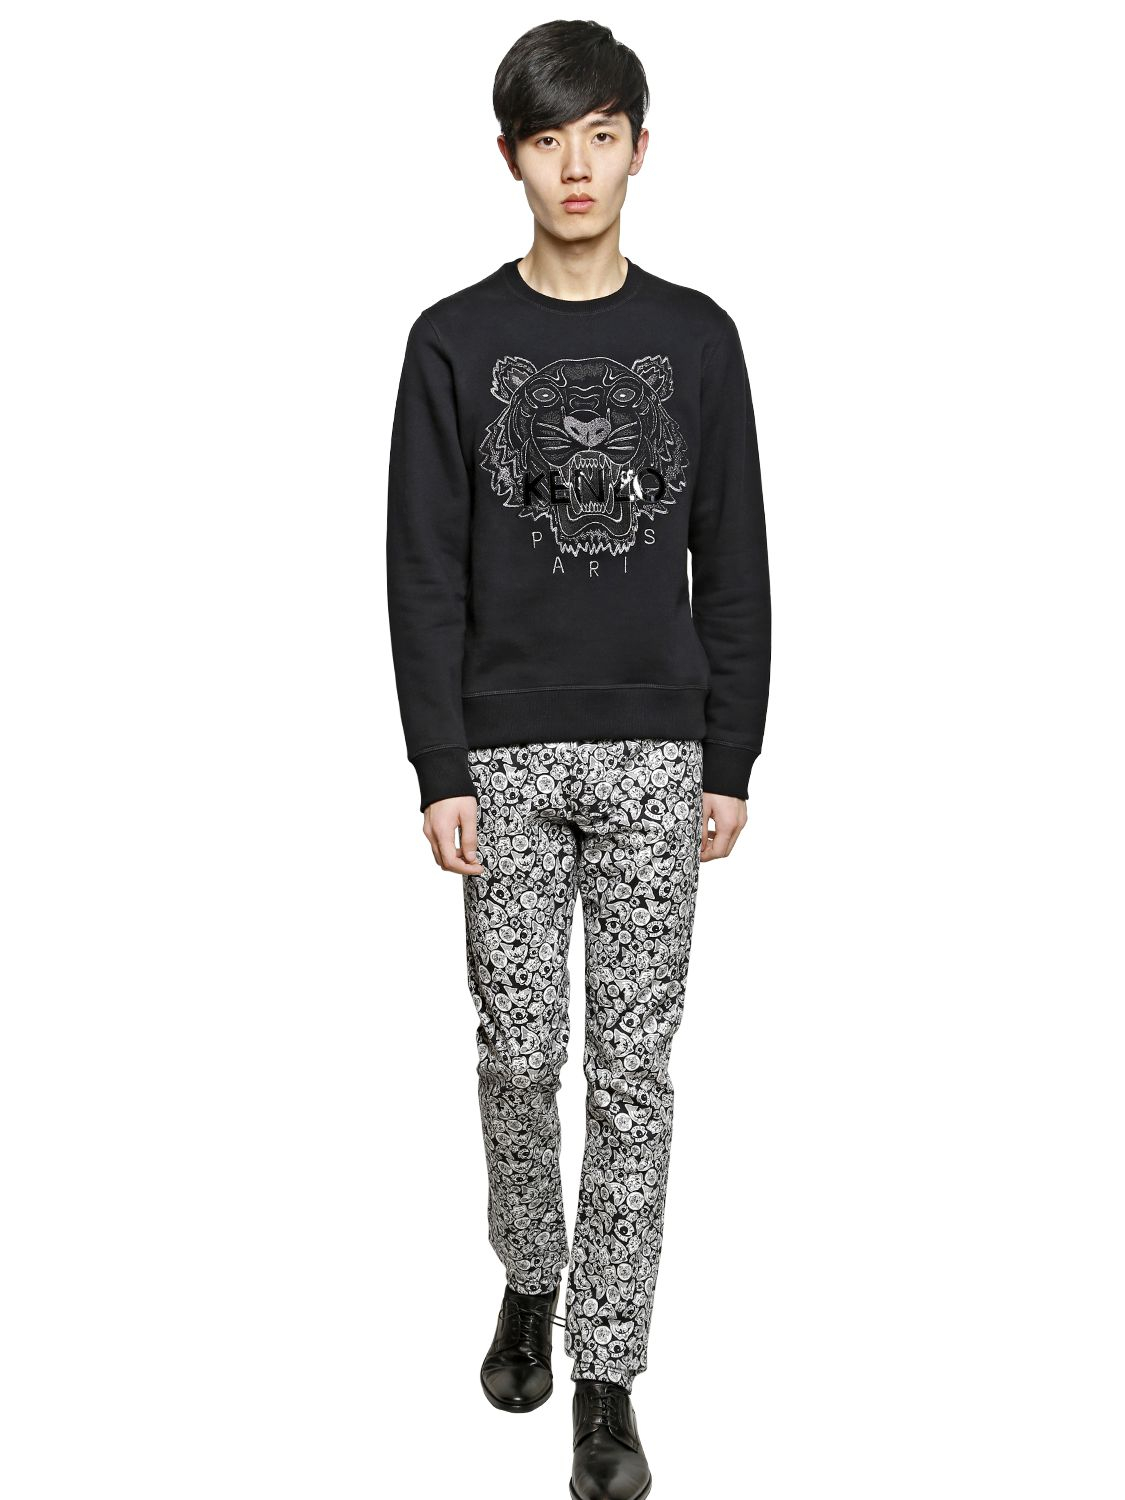 b92adf851ba1 KENZO Tiger Embroidered Cotton Sweatshirt in Black for Men - Lyst